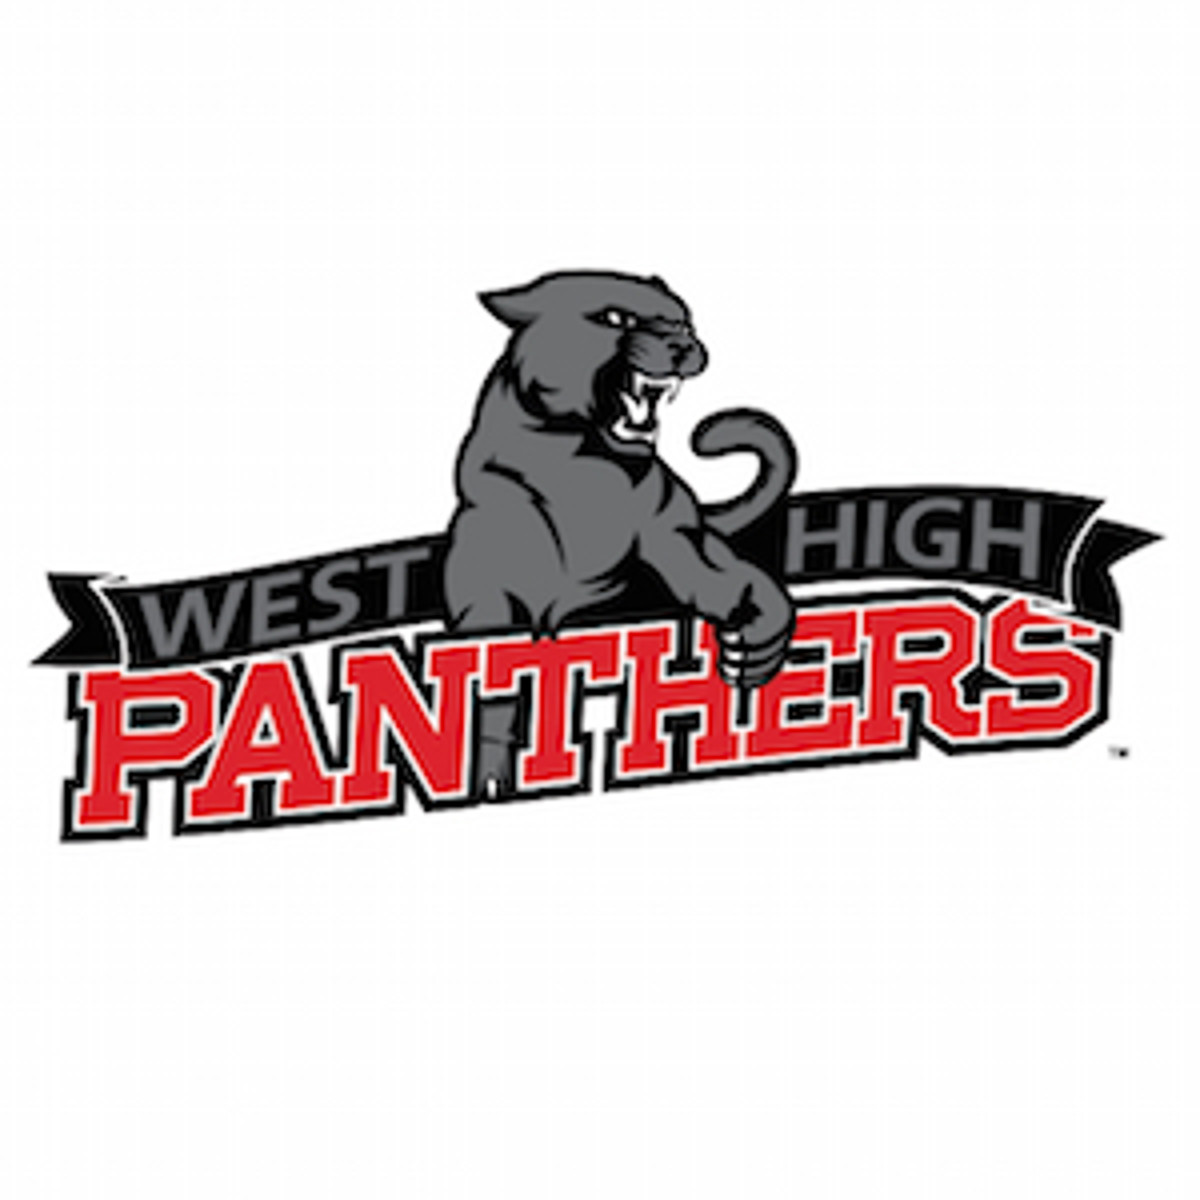 high school football west panthers 2018 preview deseret news